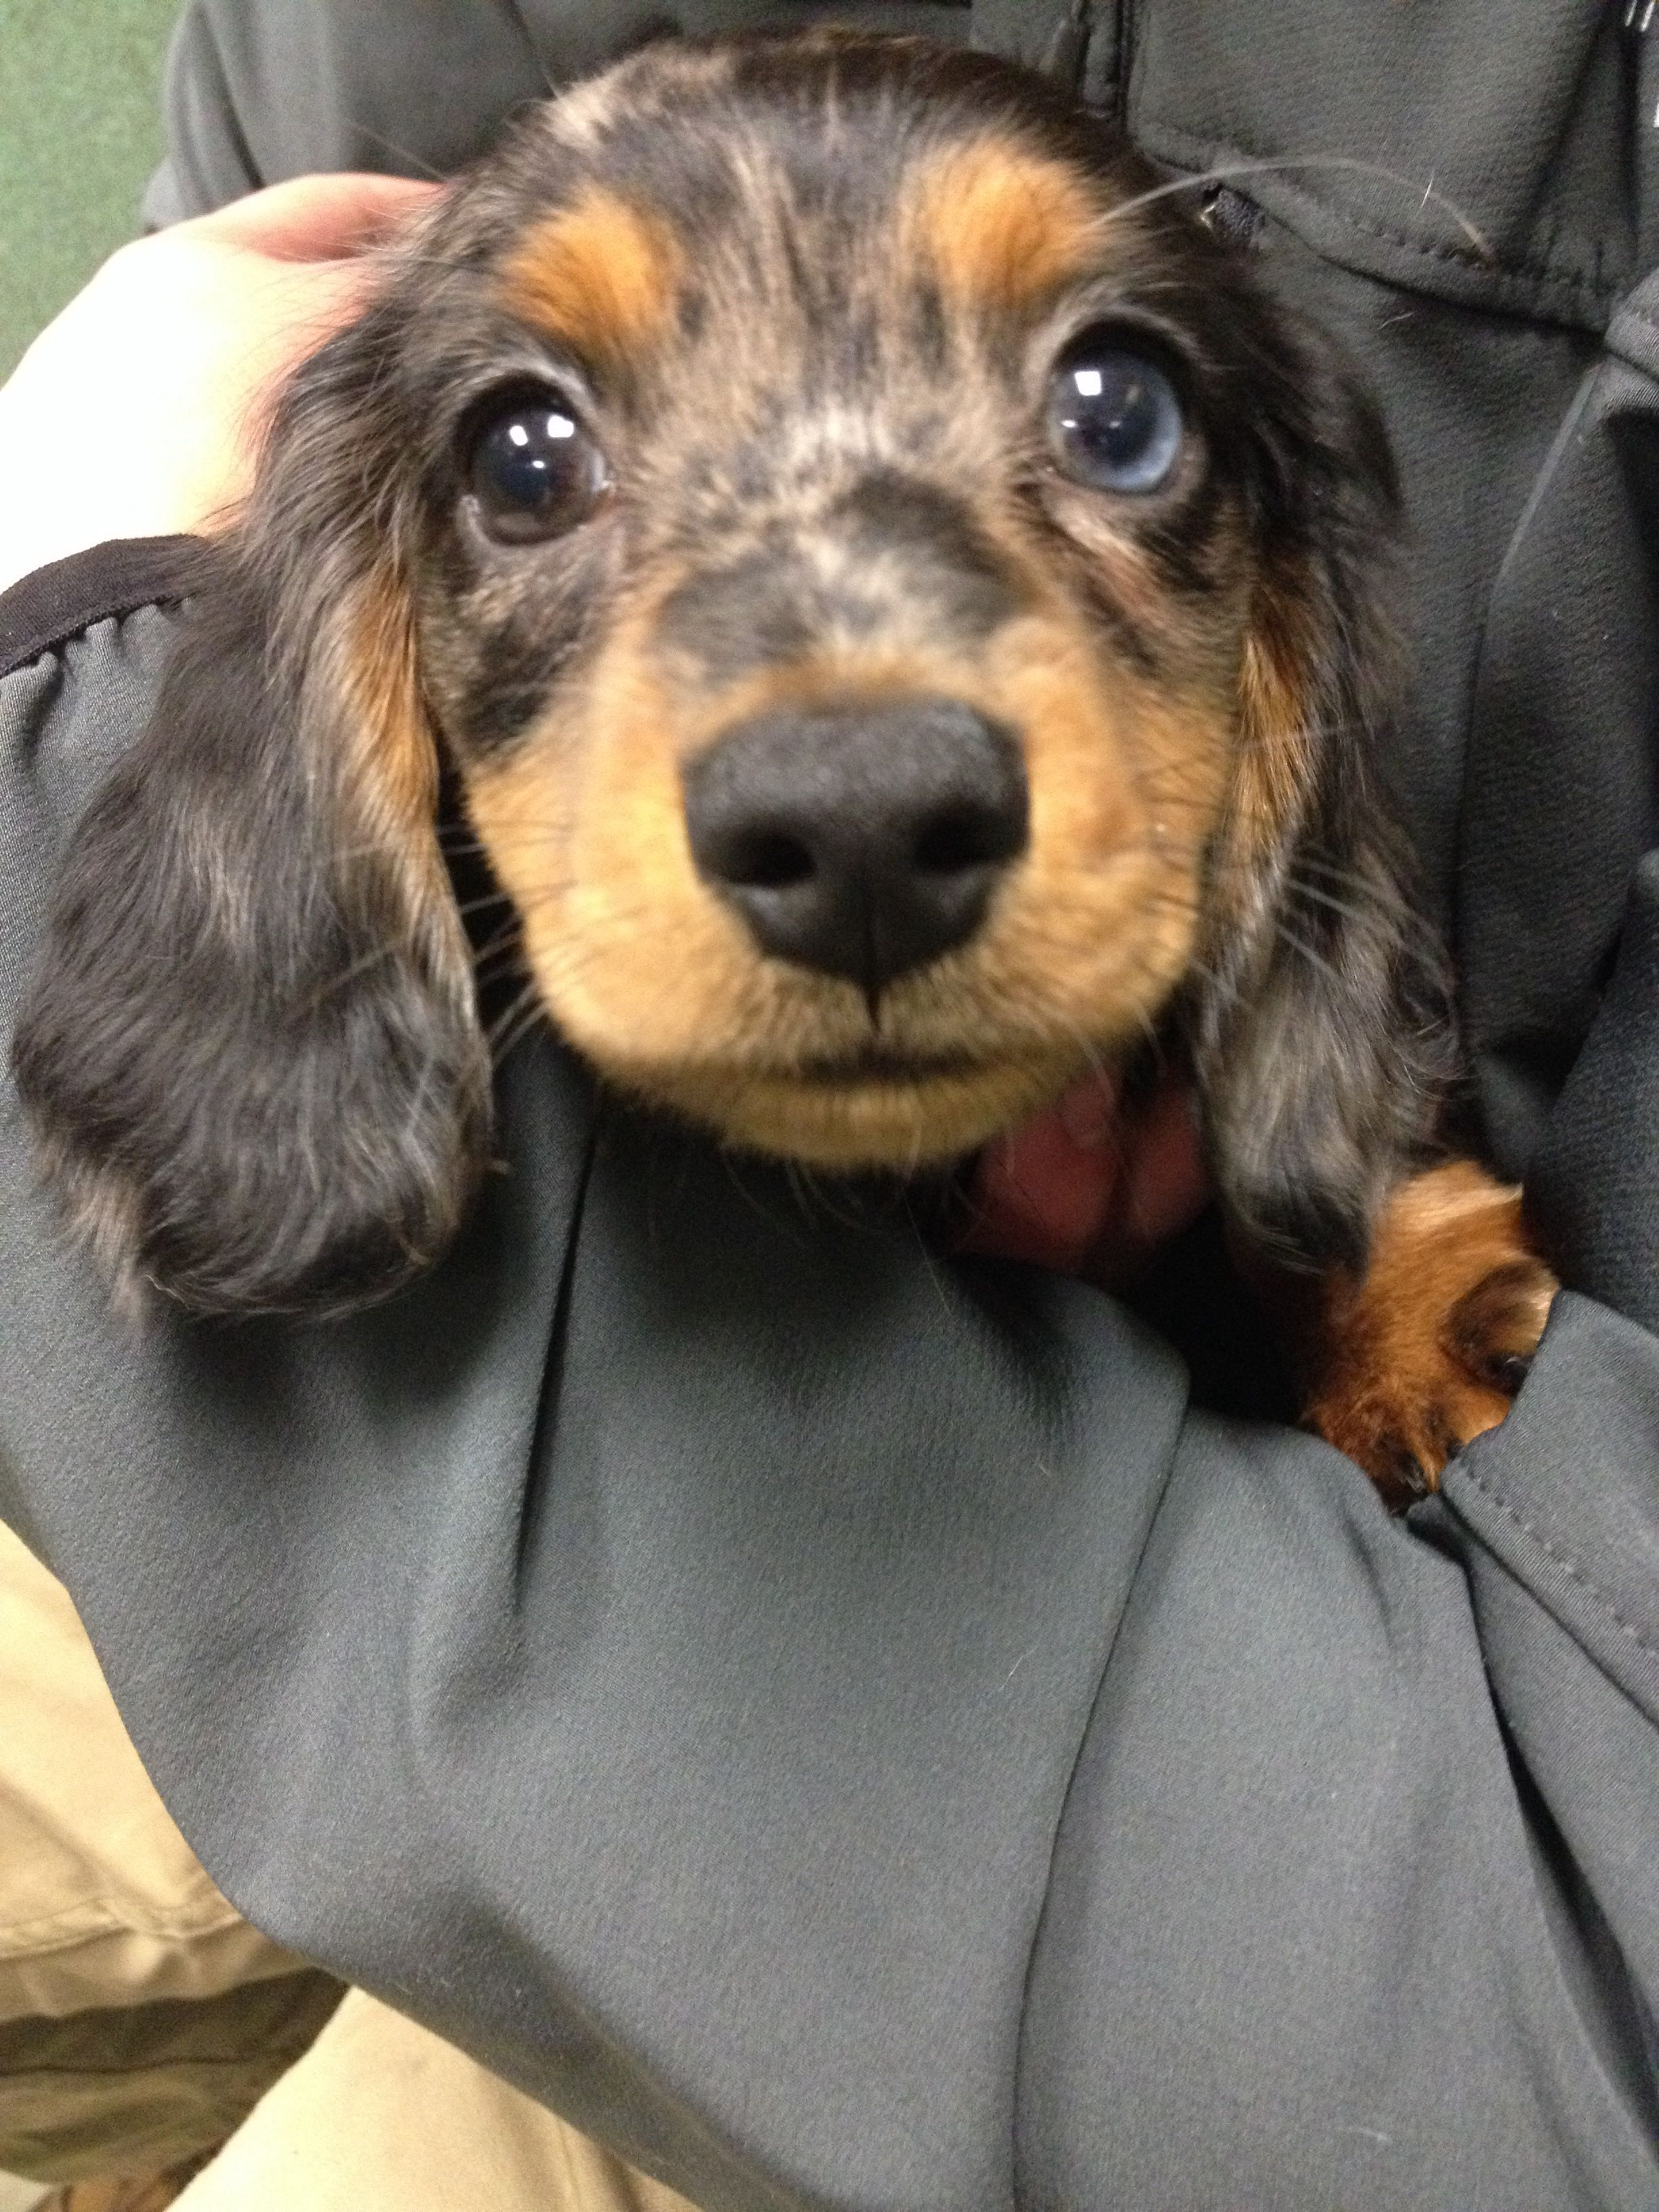 Dachshund Puppy I Love This Color Combo Daschund Puppies Dachshund Lovers Dachshund Puppies